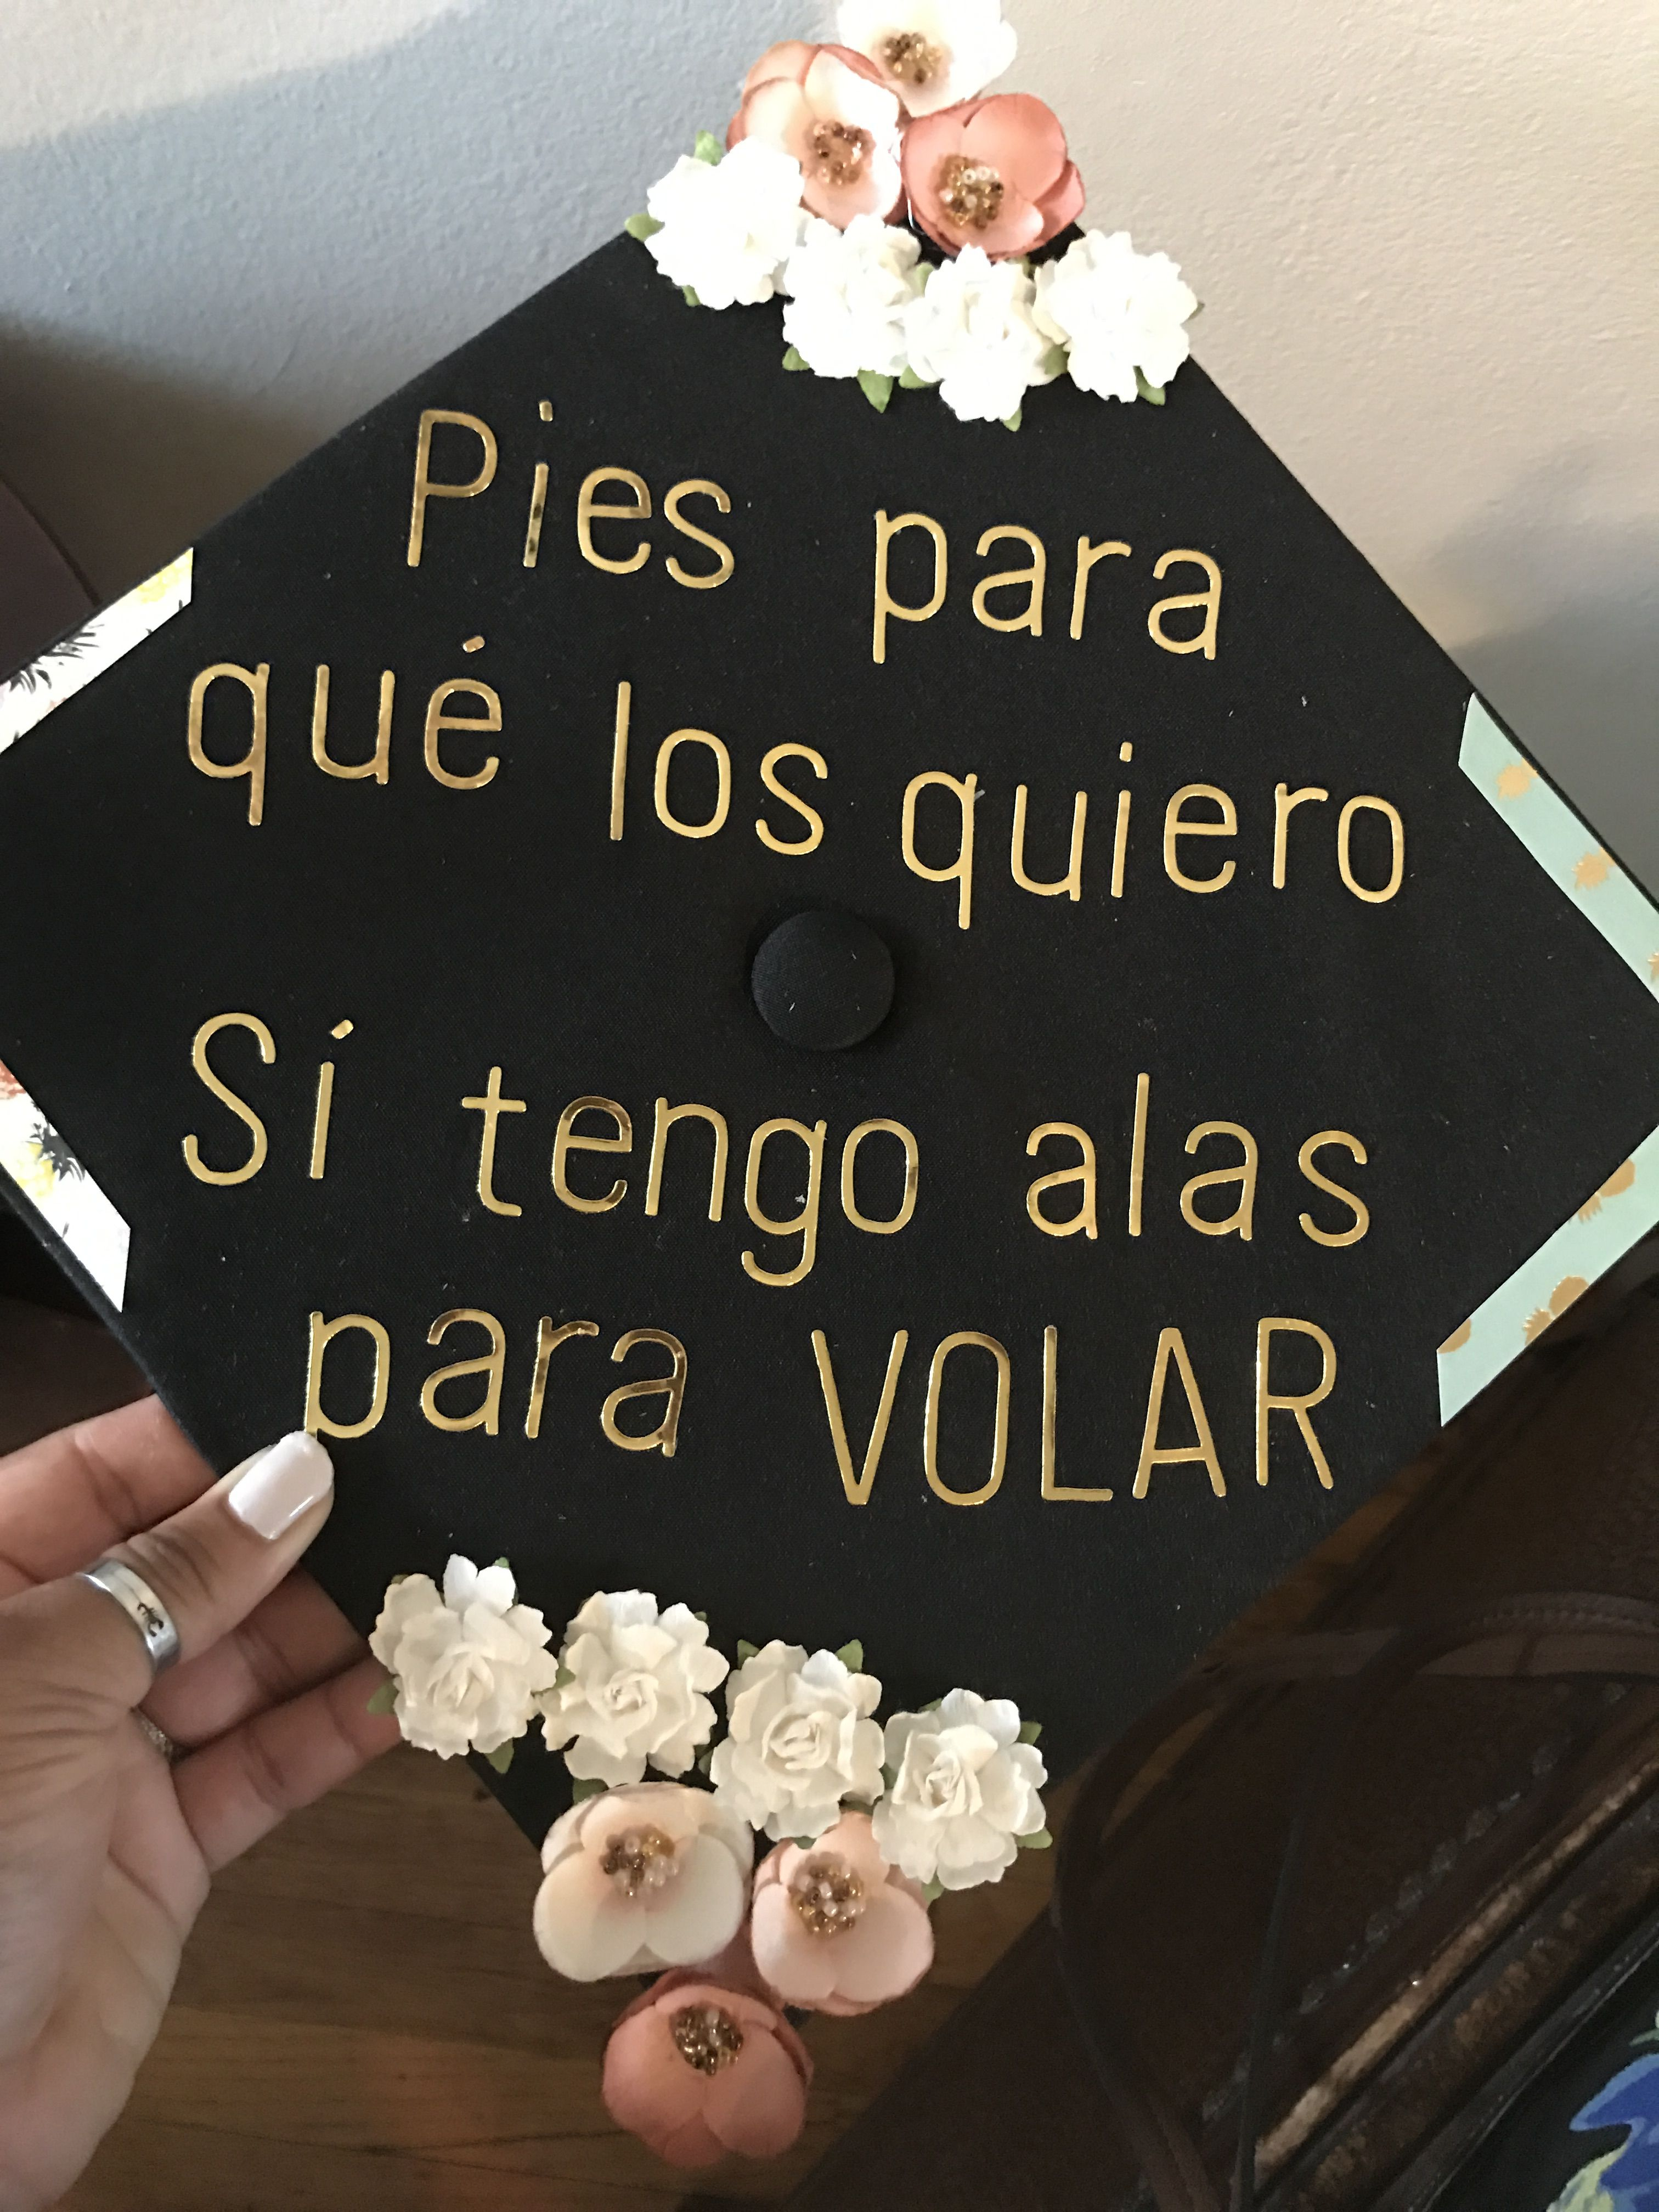 Spanish graduation caps #latina #fridakahlo #2017 | 2017 goals